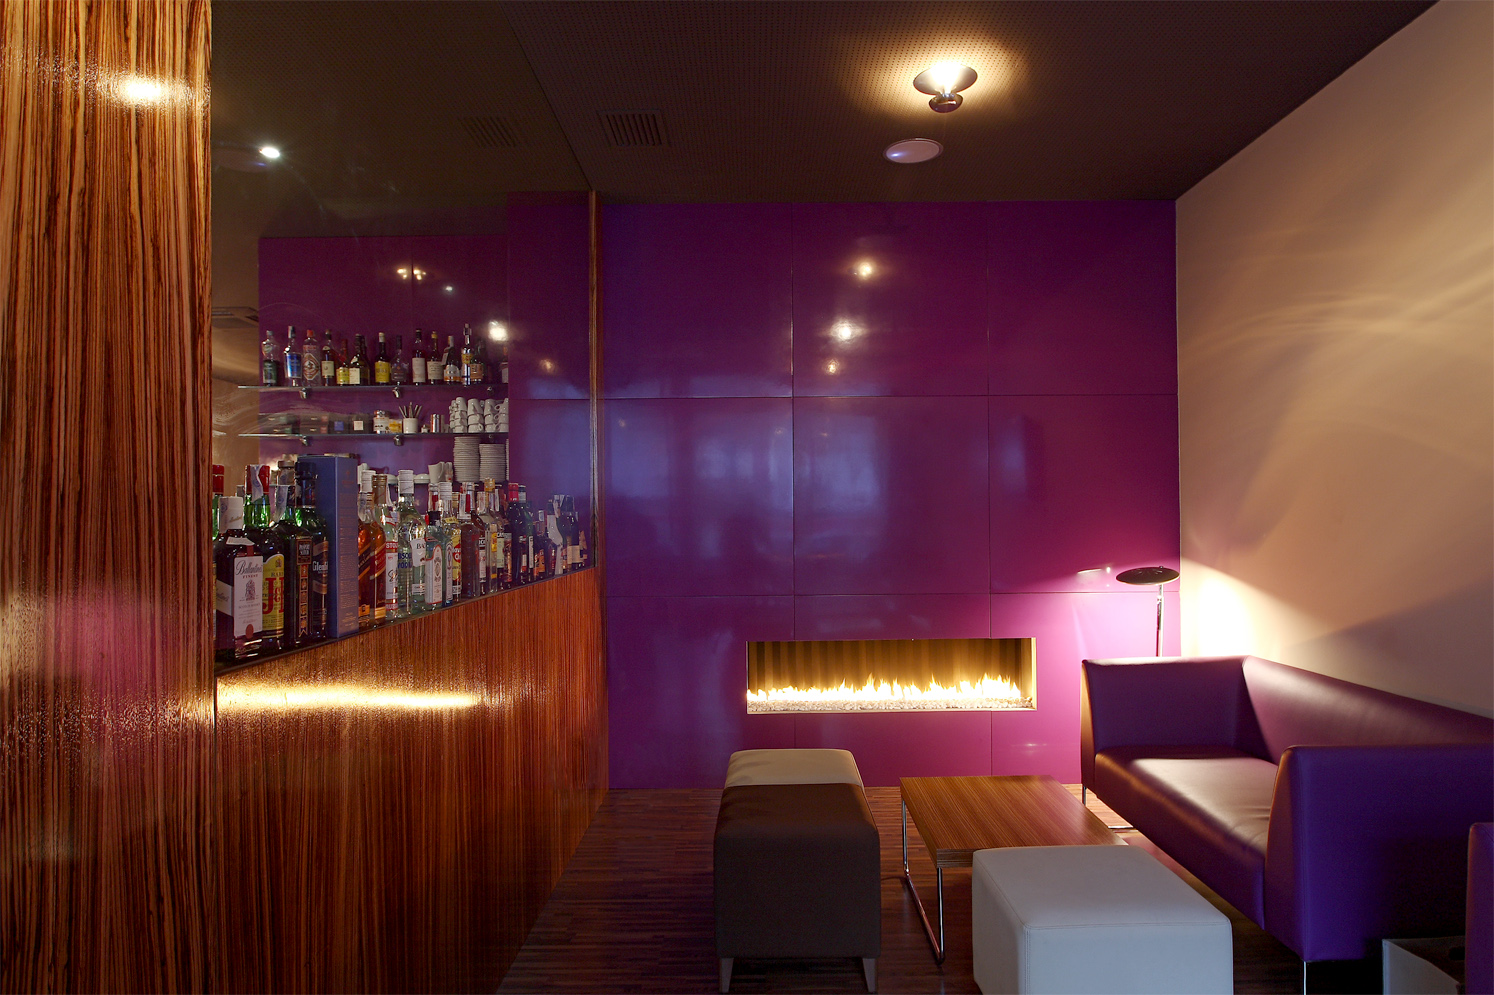 VI COOL restaurant & Lounge Bar